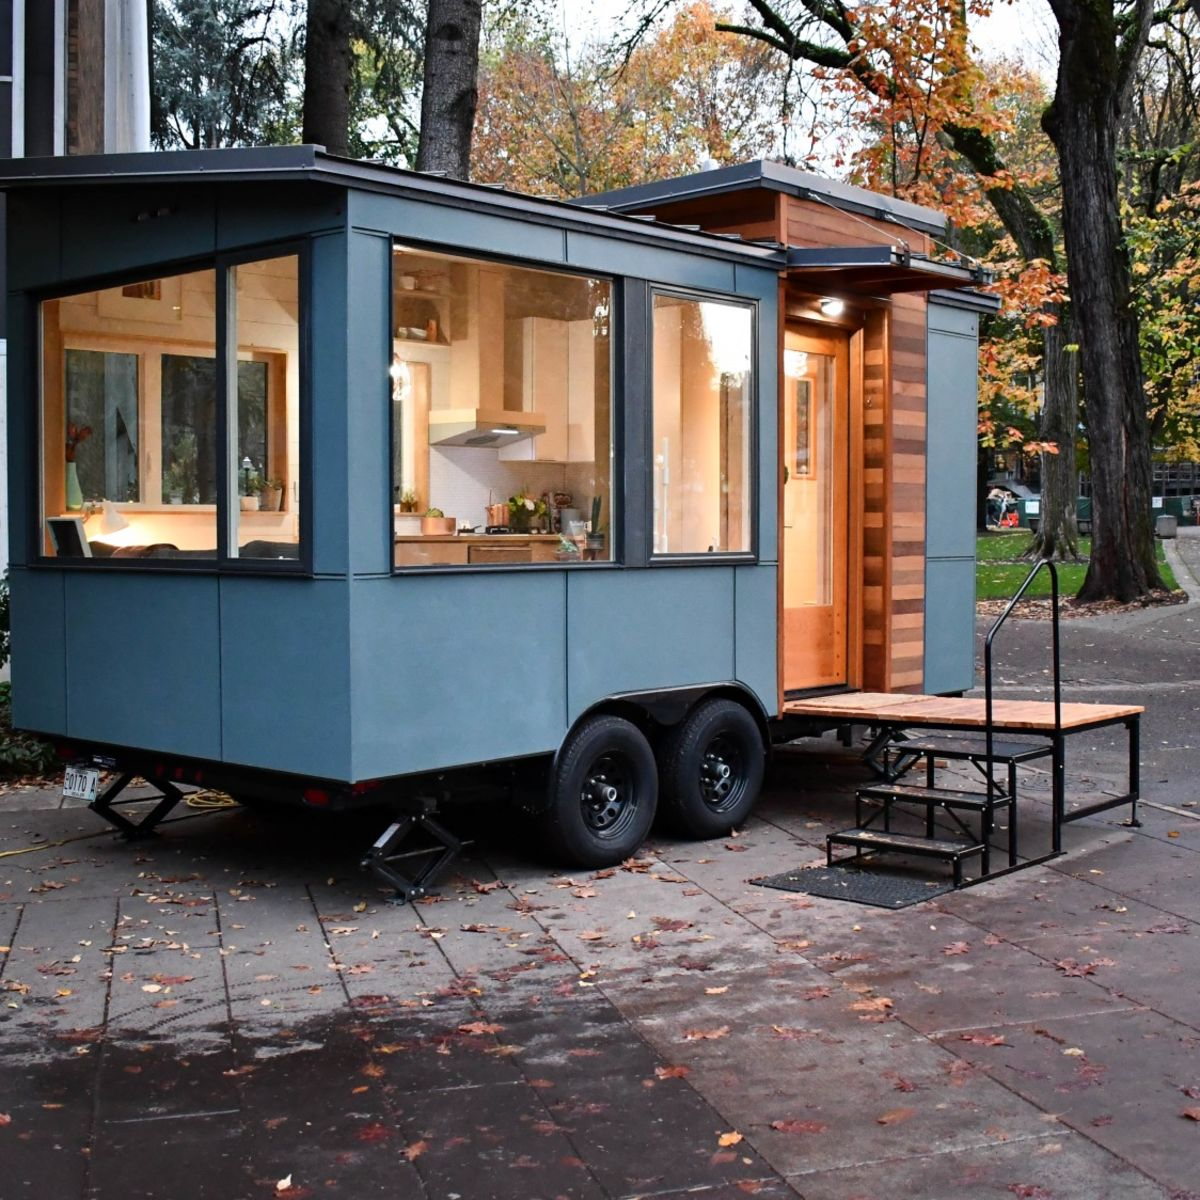 Modern Tiny House Cabin: Small Modern Tiny House On Wheels